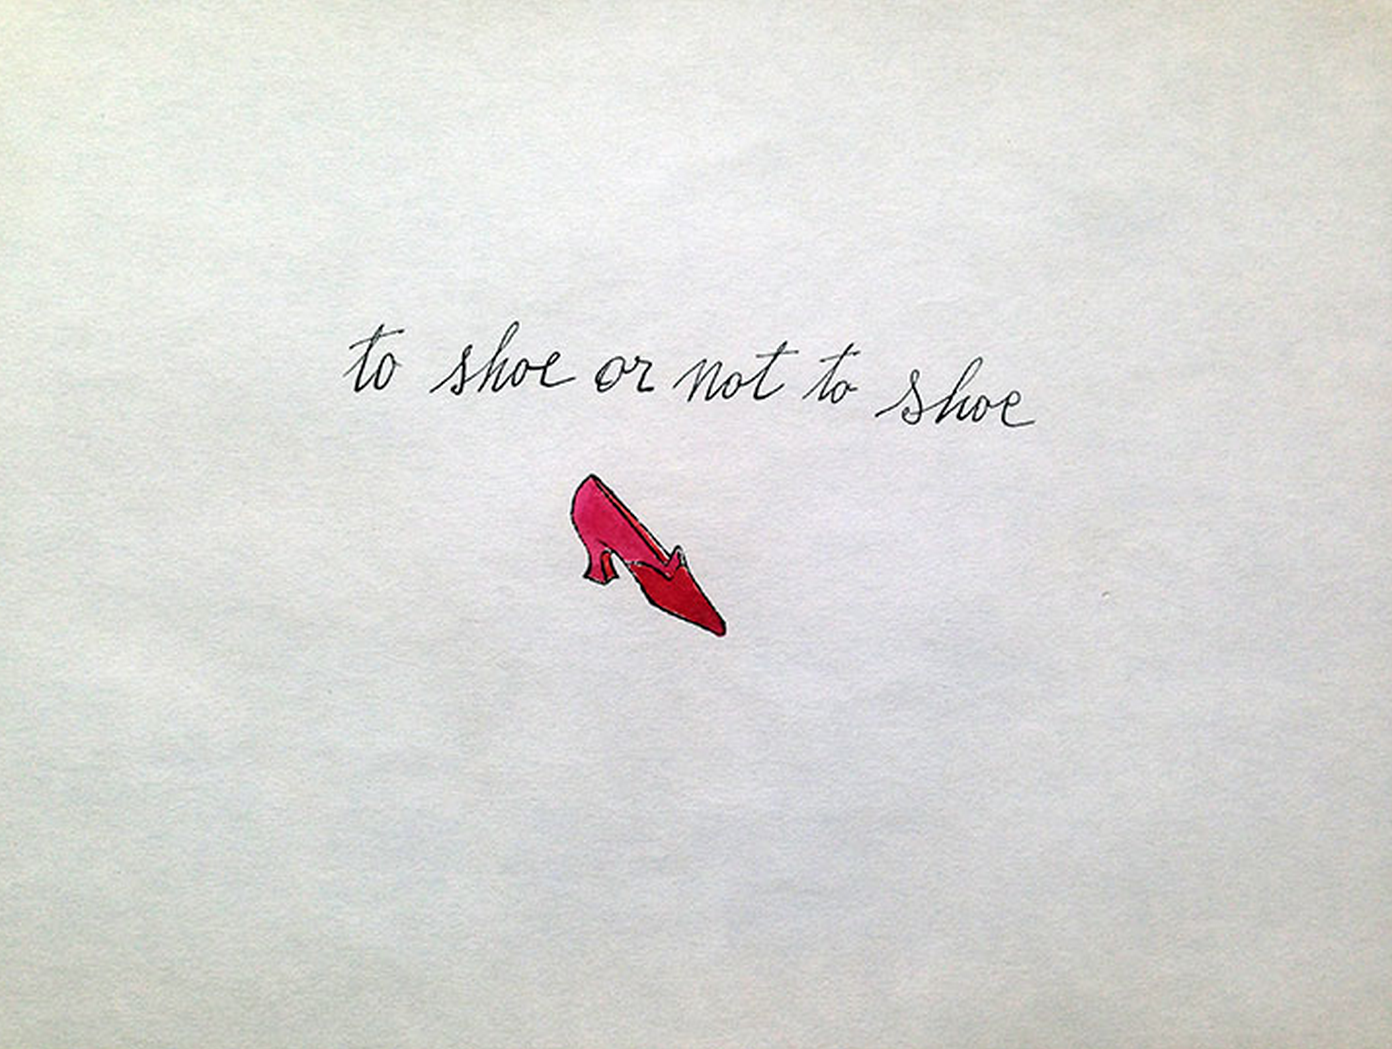 To Shoe or Not Shoe by Andy Warhol